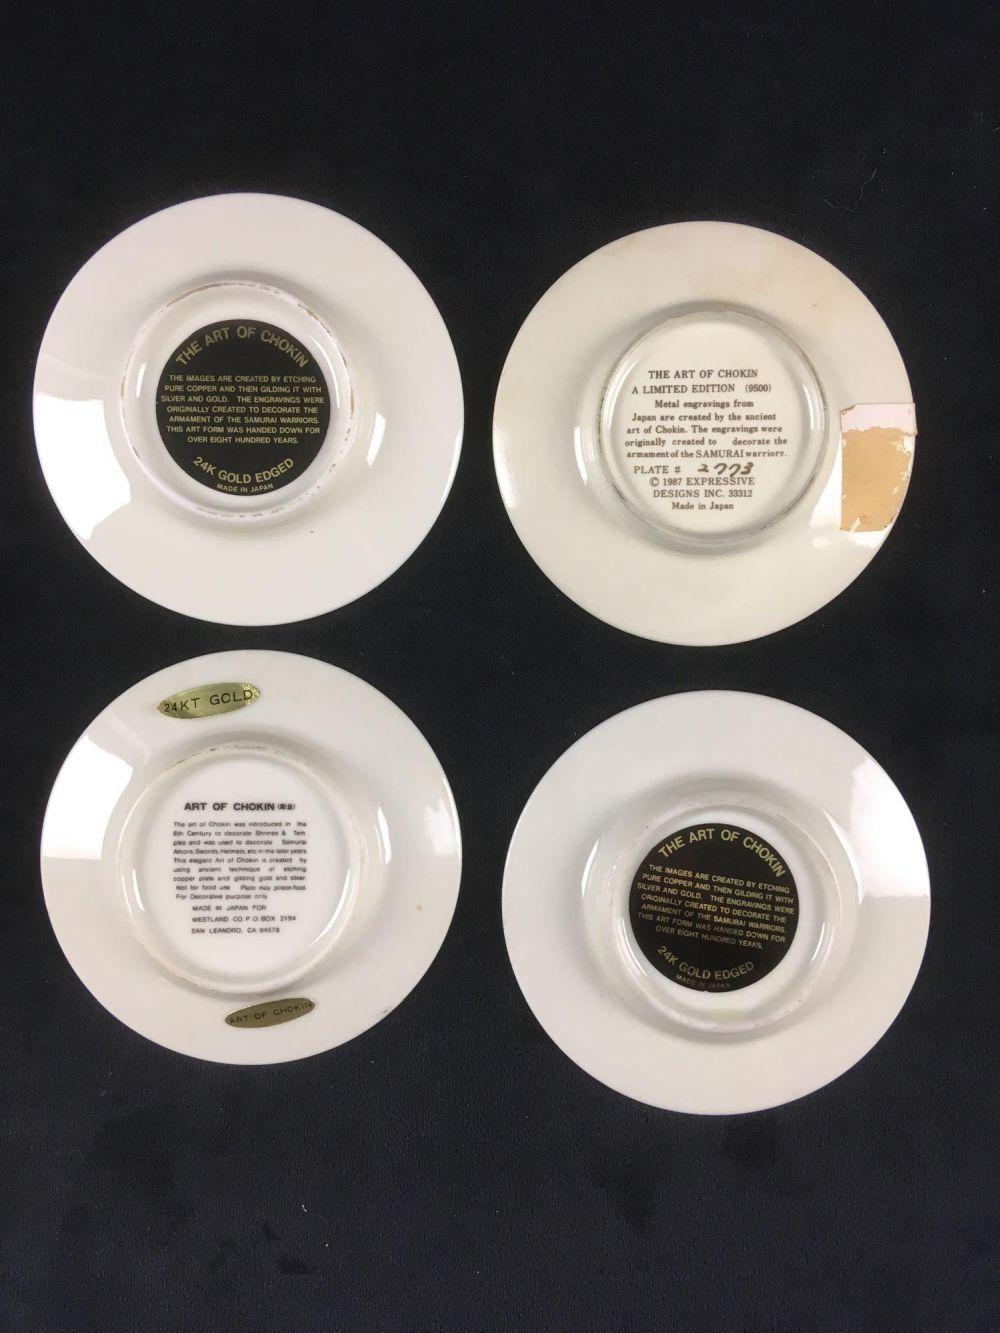 Lot 171: Art of Chokin Collection with Set of 4 Plates and Trinket Dish with Lid